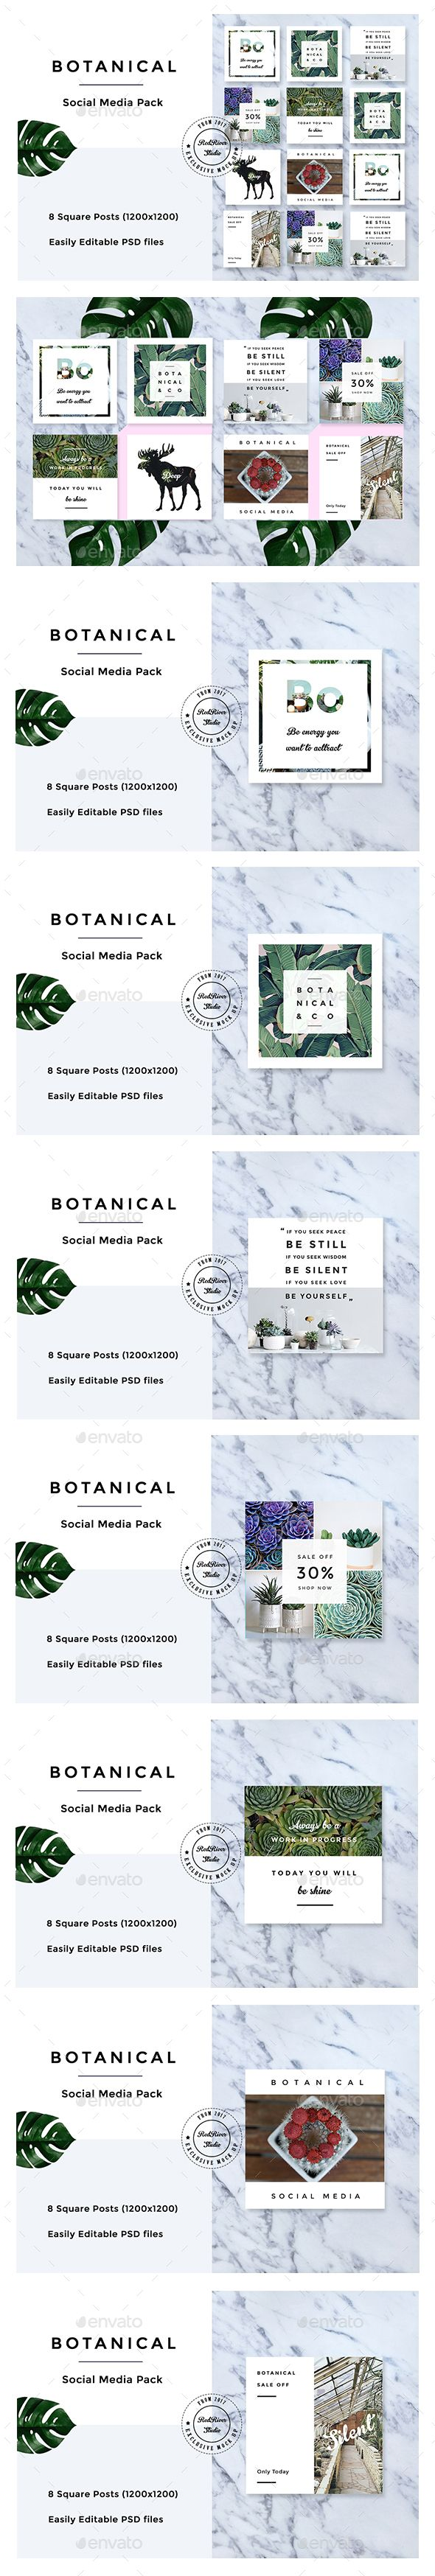 Botanical Social Media Pack The Botanical Social Media Pack is an upbeat and tropical social media pack perfect for fashion bloggers, beauty bloggers, lifestyle bloggers, fashion businesses, beauticians, and stylists. Promote your posts, business, sales and events on Facebook, Pinterest, Instagram and Twitter or add a beautiful image to your blog posts.